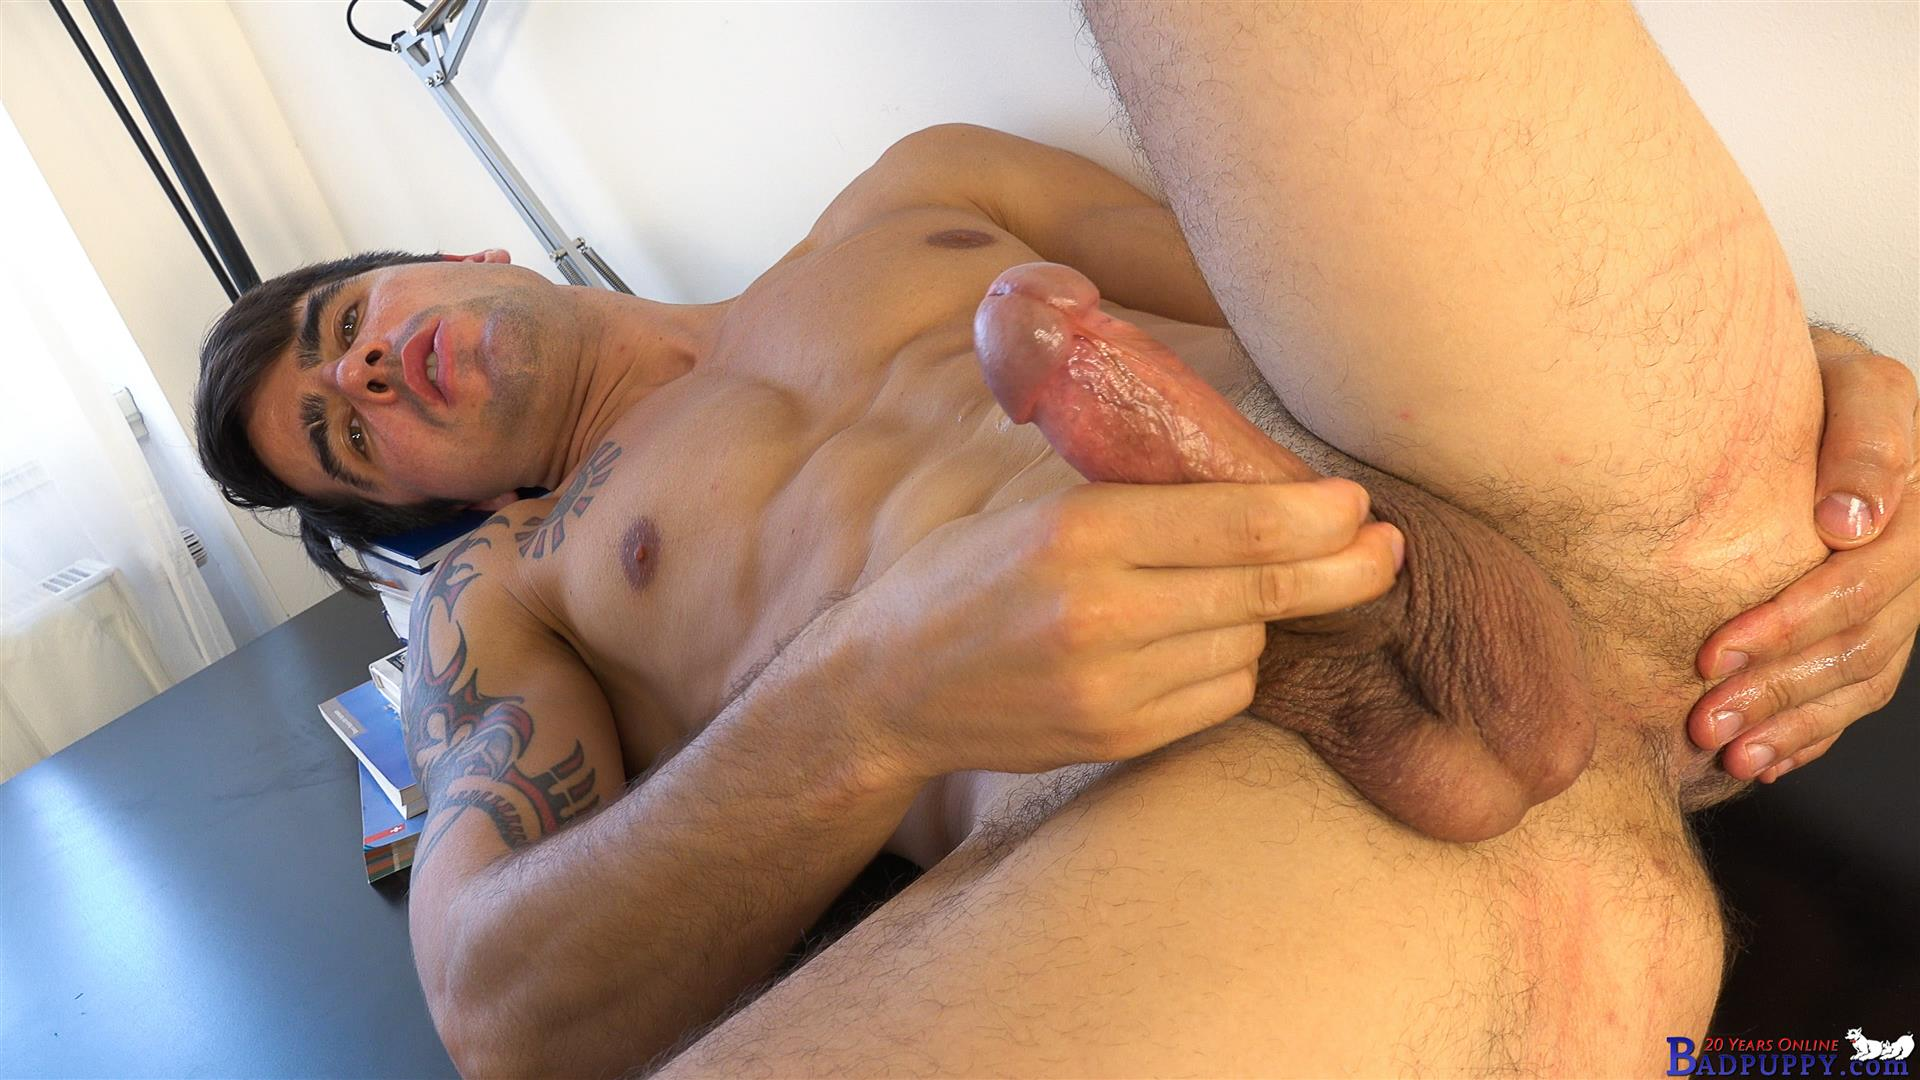 Badpuppy-Milan-Pis-Straight-Guy-With-Big-Uncut-Cock-Masturbating-Amateur-Gay-Porn-14 Straight Italian Banker Masturbating His Big Uncut Cock